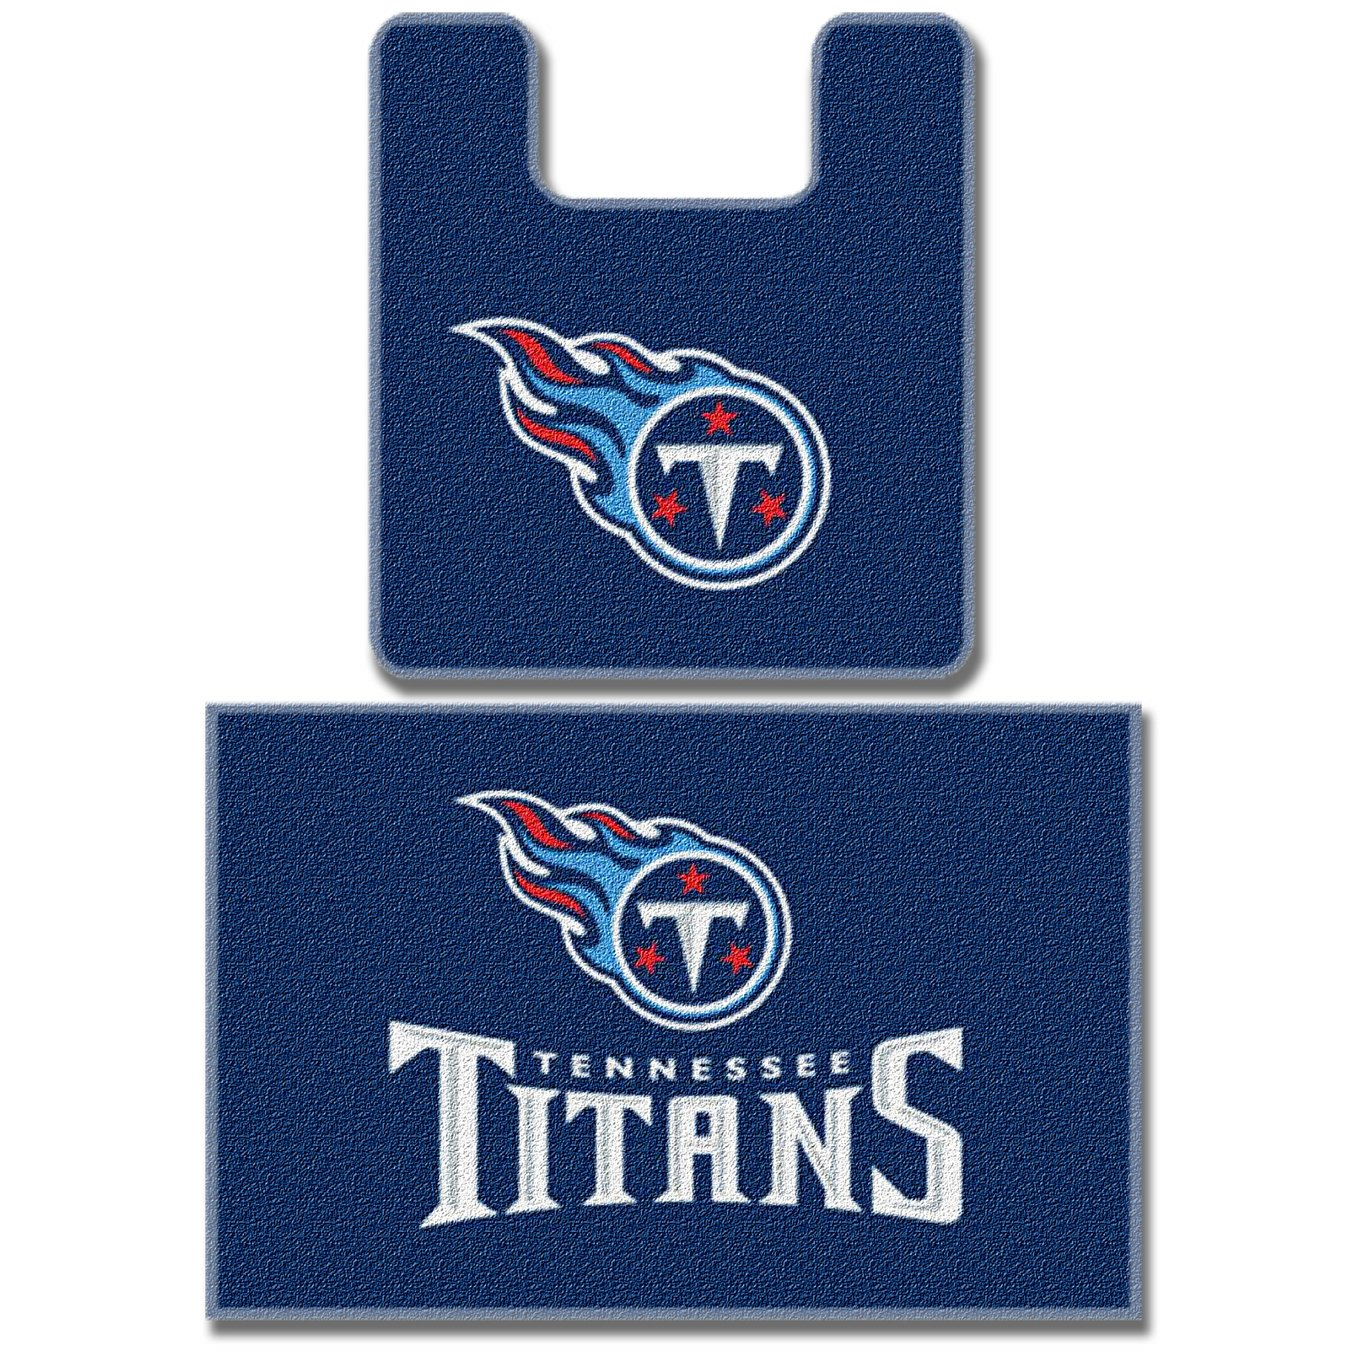 Amazon.com : NFL Tennessee Titans 2-Piece Bath Mat Set : Bed And ...